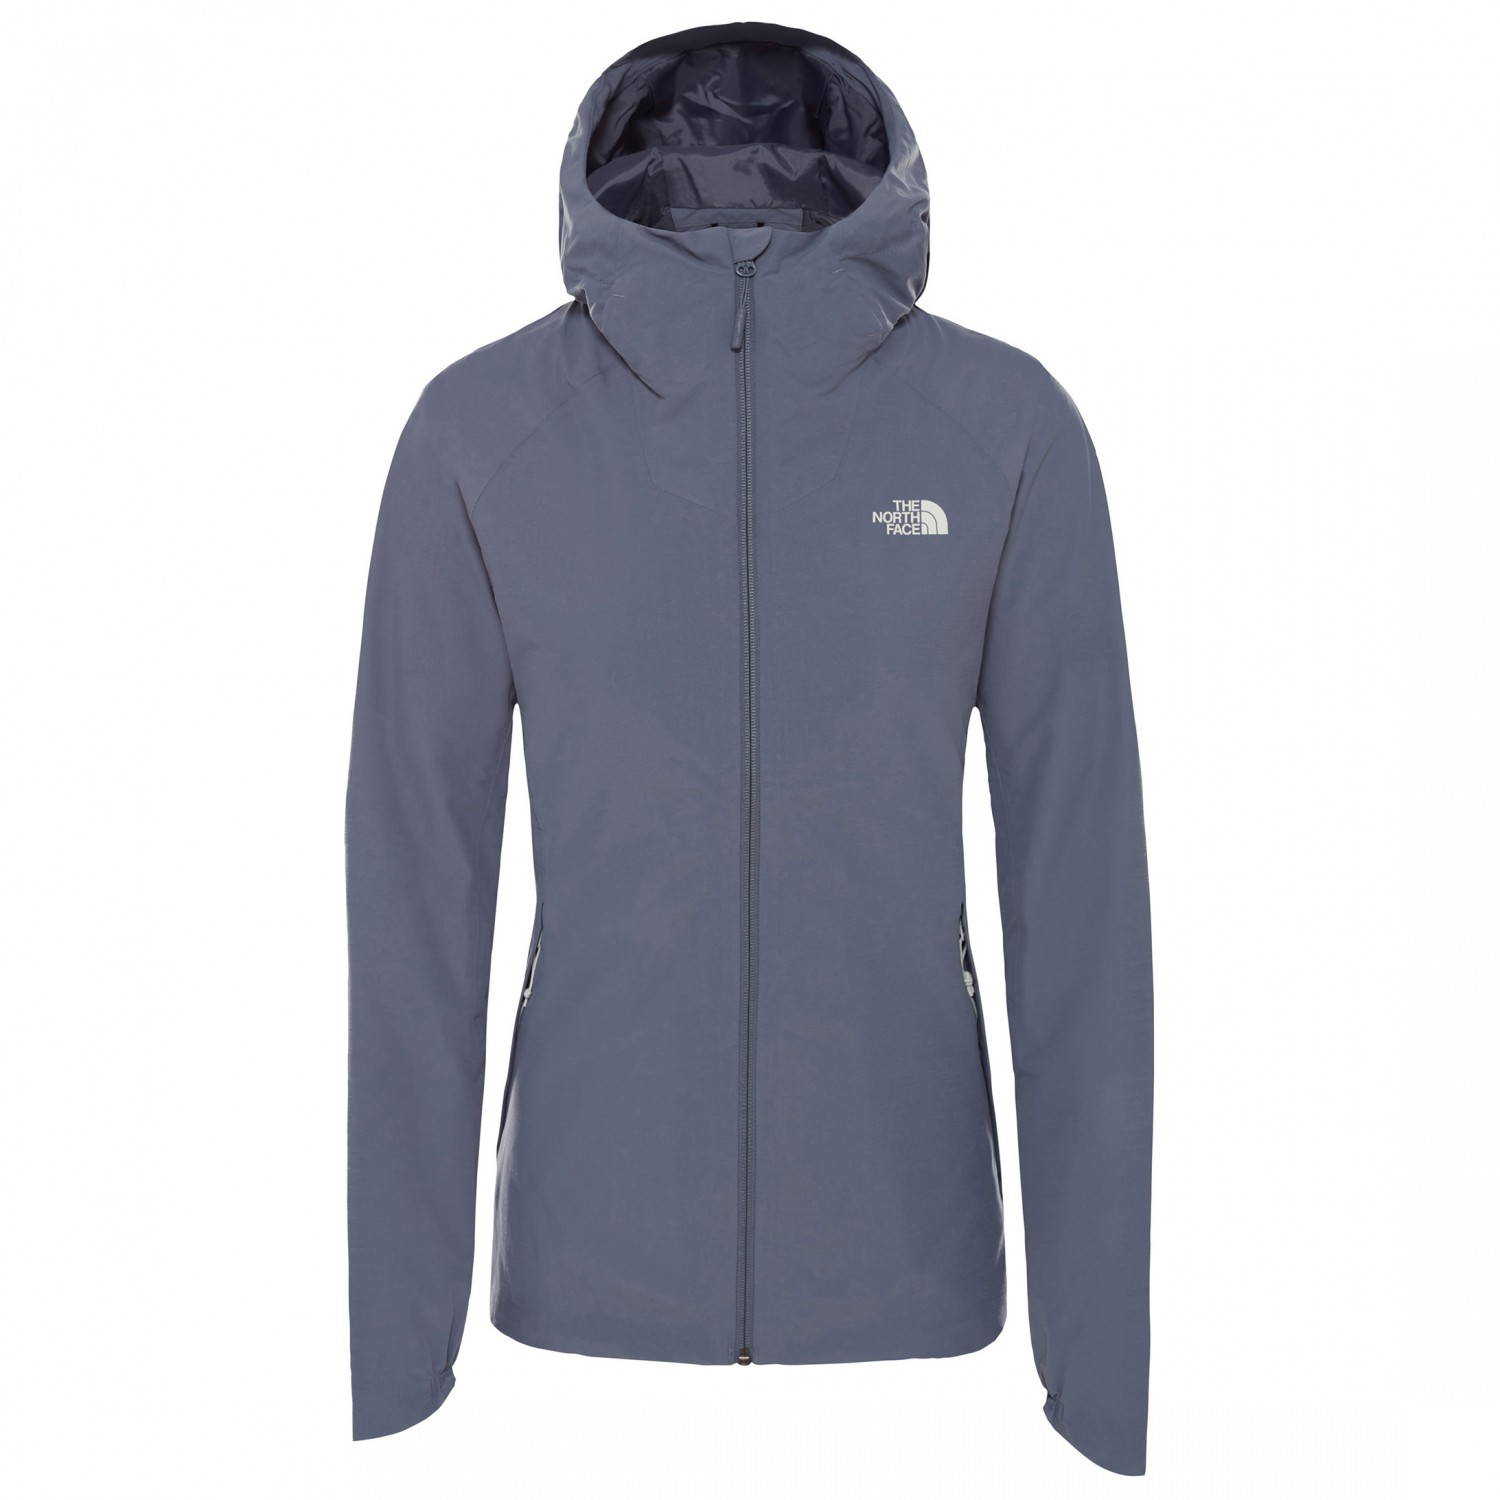 038c0c5e2 The North Face - Women's Invene Jacket - Waterproof jacket - Tin Grey /  Grisaille Grey | L